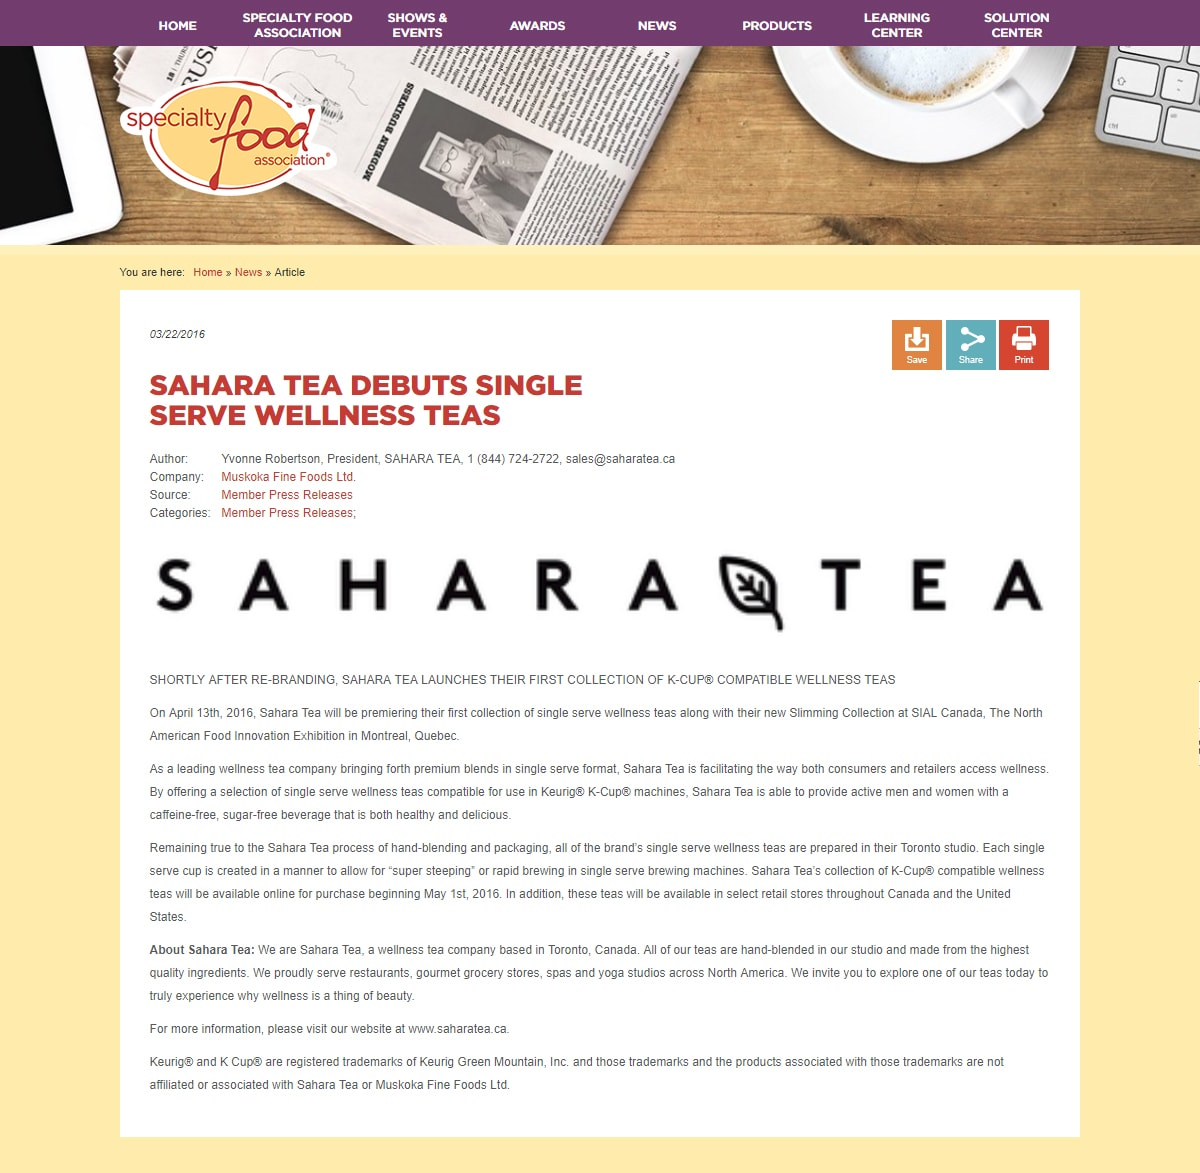 Sahara & Co Specialty Food Association